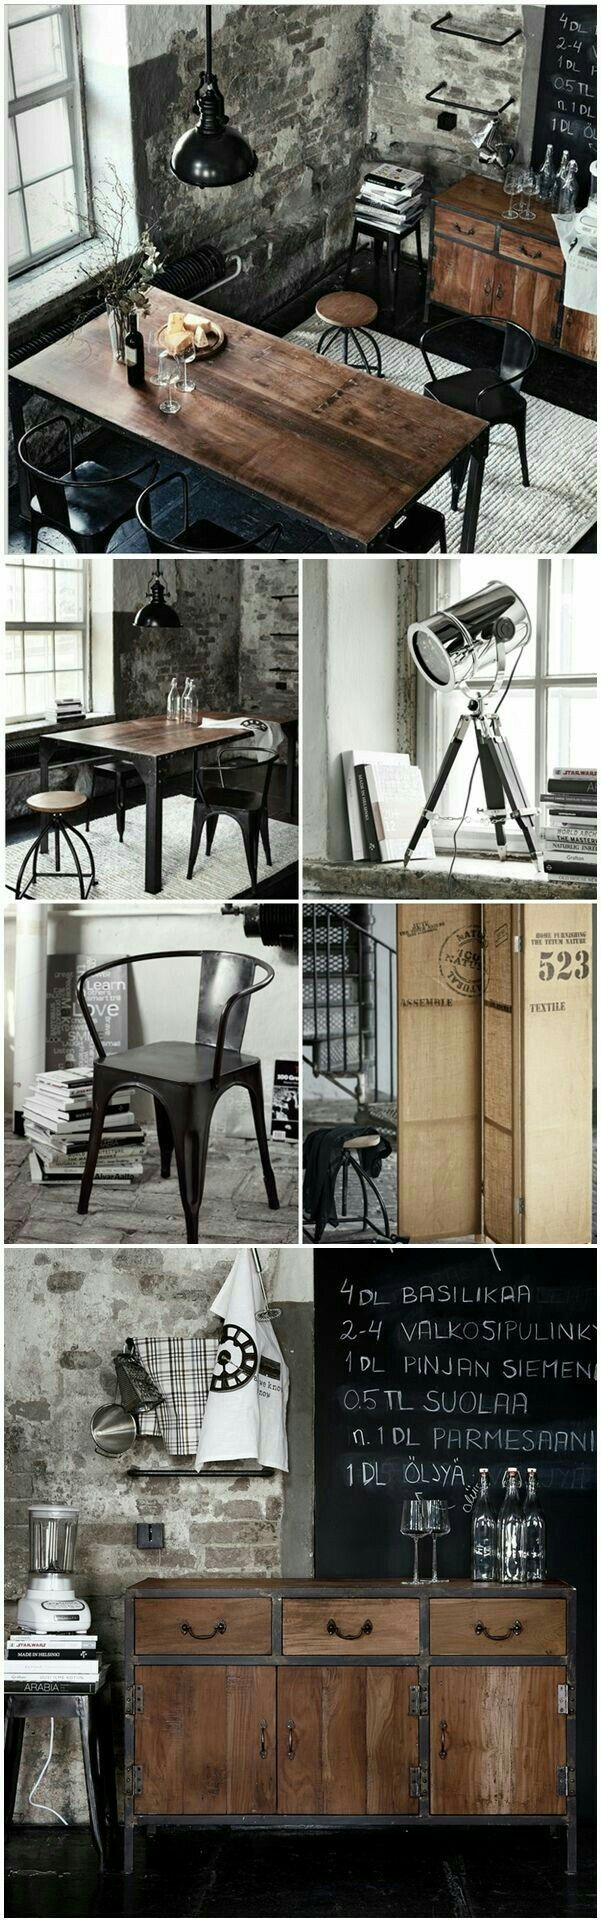 6 WAYS TO BRING INDUSTRIAL STORAGE SOLUTIONS TO YOUR HOME! | http://vintageindustrialstyle.com/ | vintage industrial style vintage home decor industrial home decor